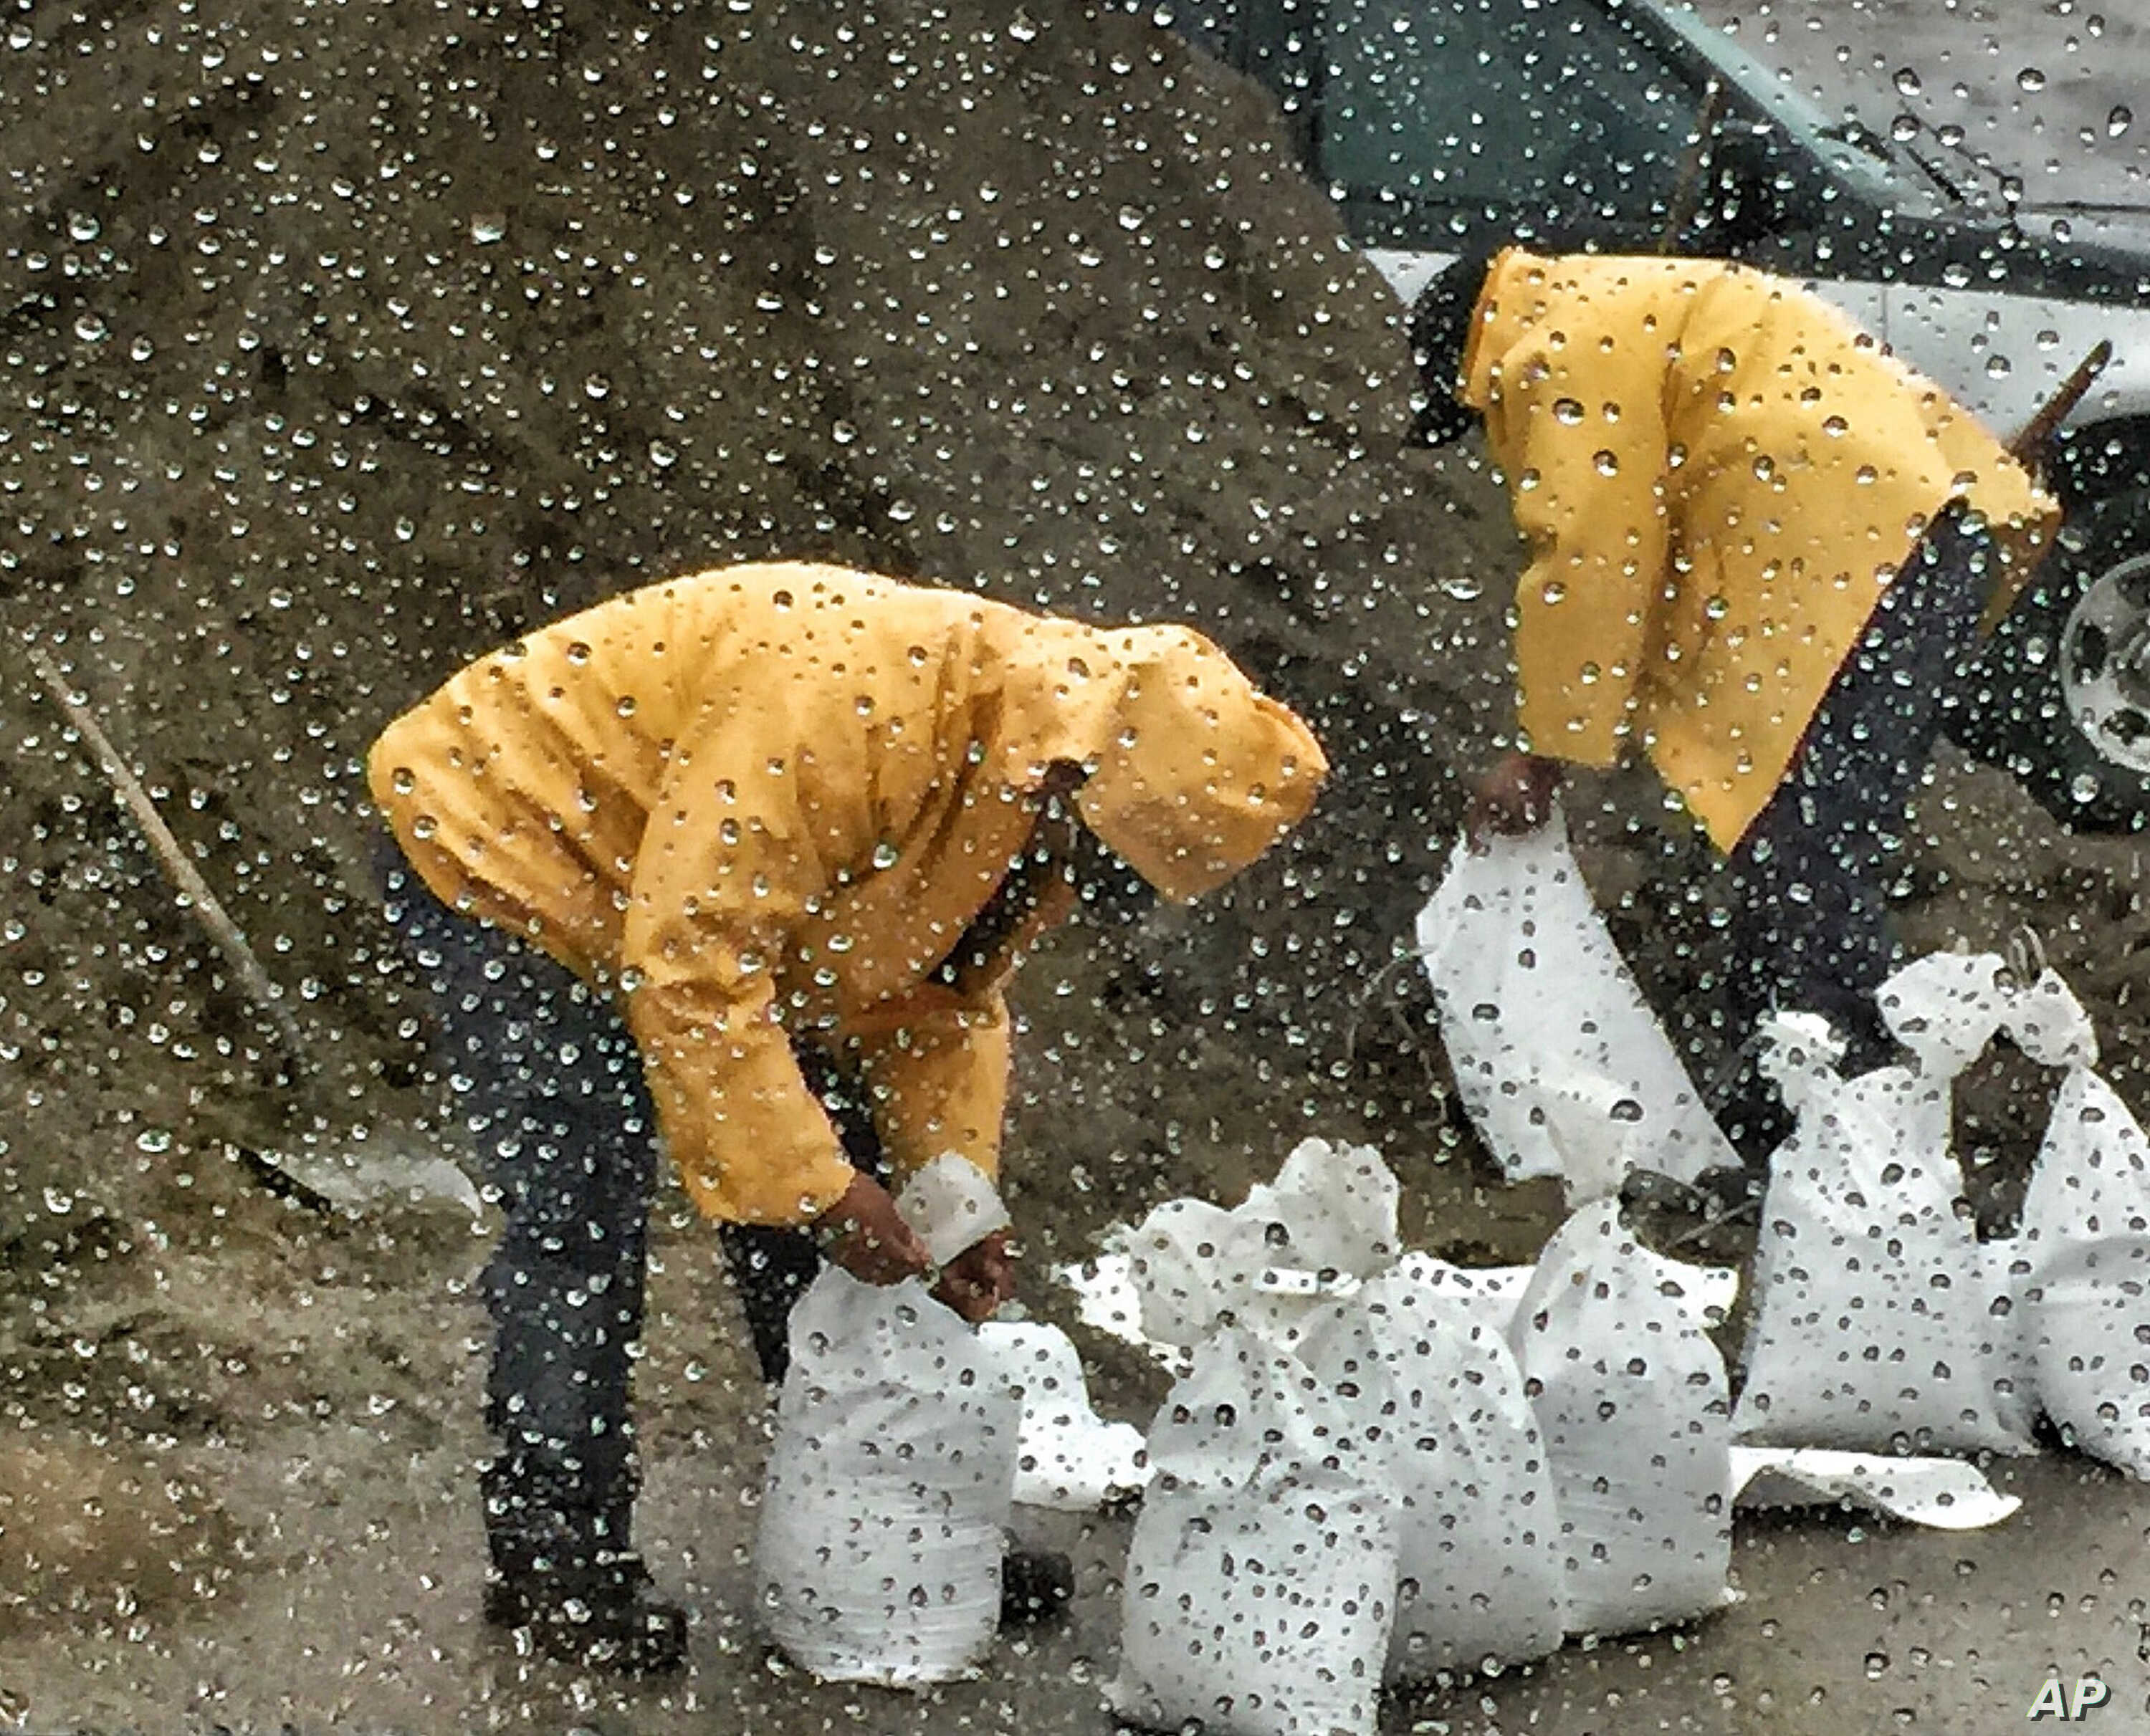 In this photo taken through a glass window, released by Santa Barbara County Fire Department, people fill up sandbags under the rain in Santa Barbara, California, Jan. 8, 2018.